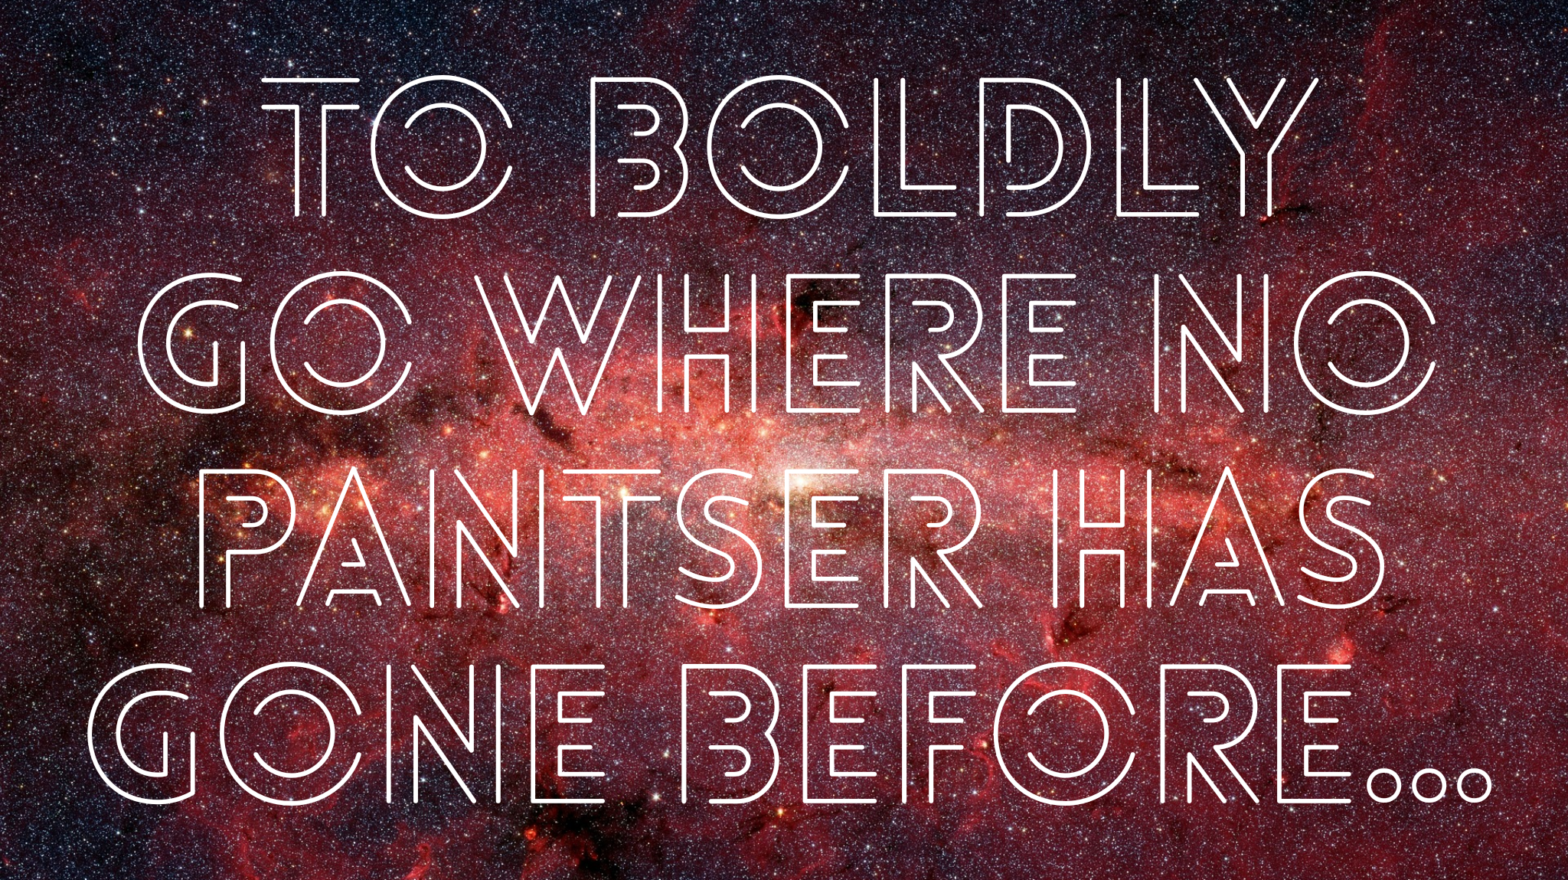 To boldly go where no pantser has gone before…